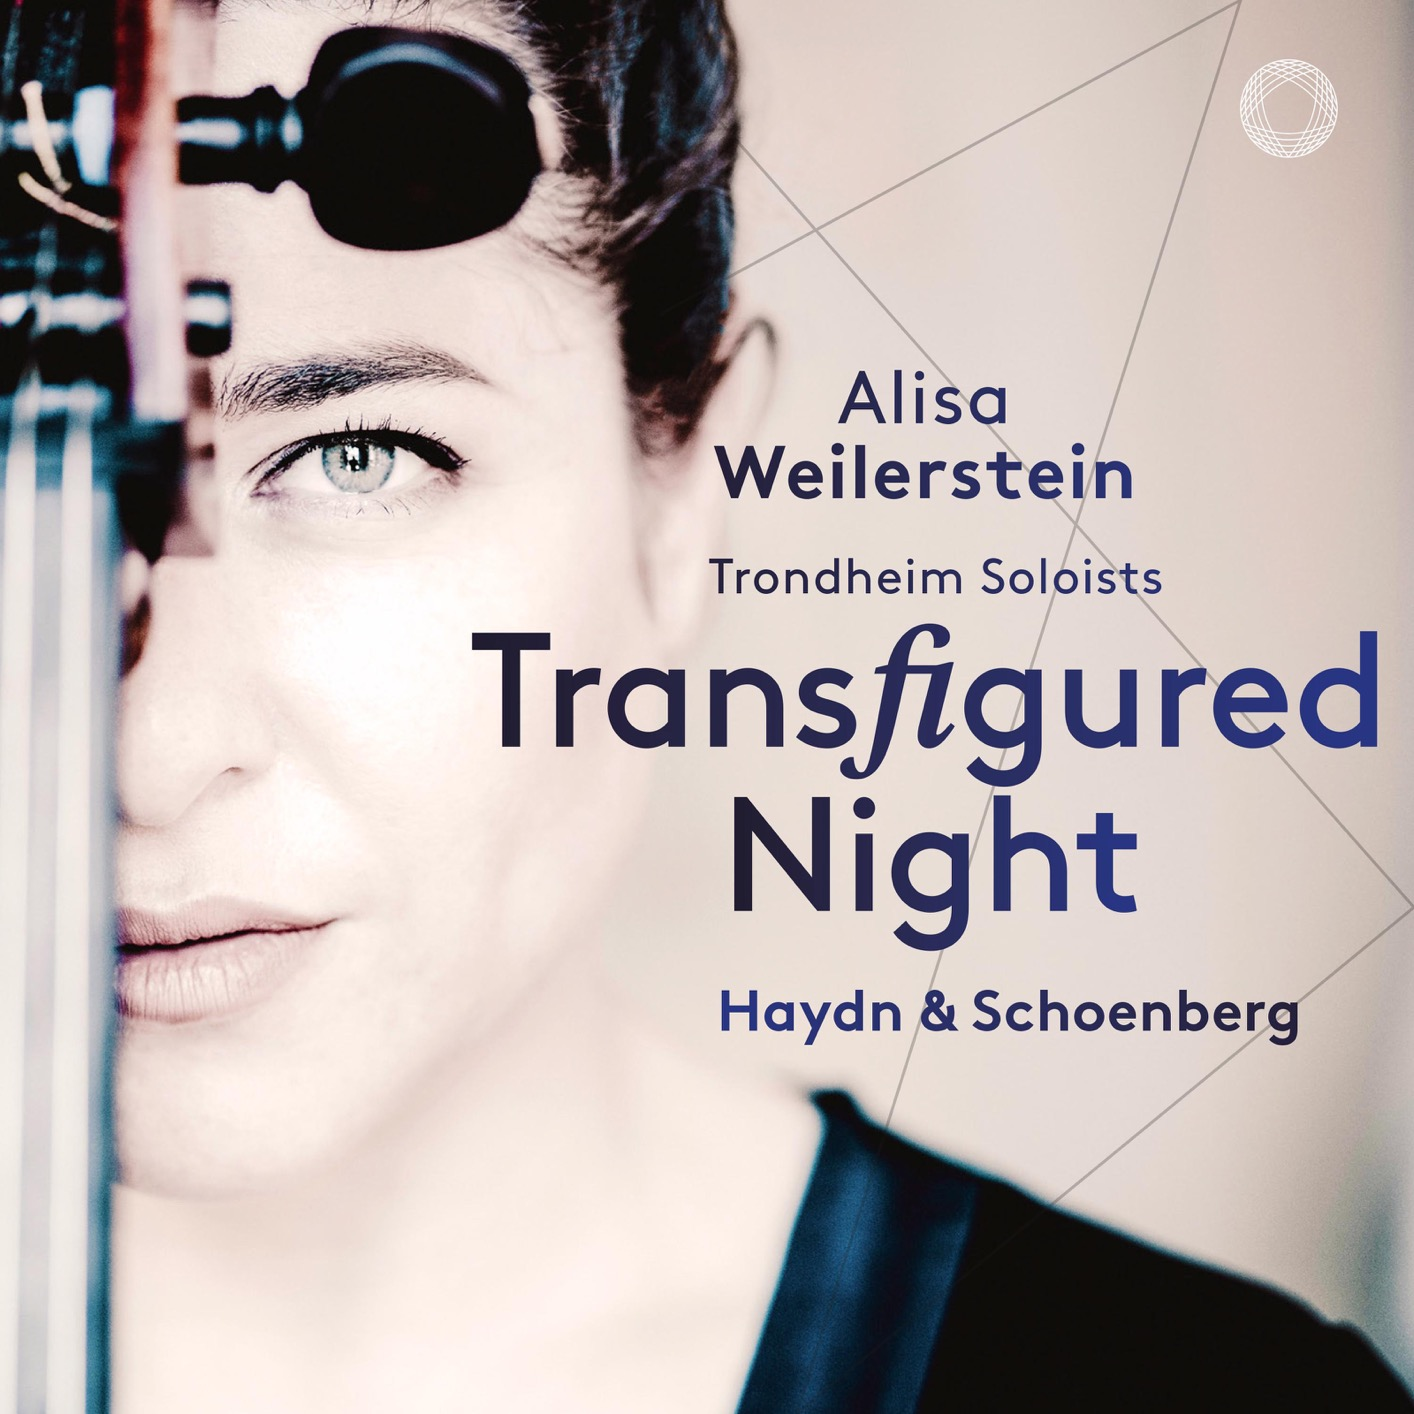 c7d3e7314dc0 Transfigured Night brings together two outstanding composers associated  with Vienna  Joseph Haydn and Arnold Schoenberg. The former is often seen  as the ...